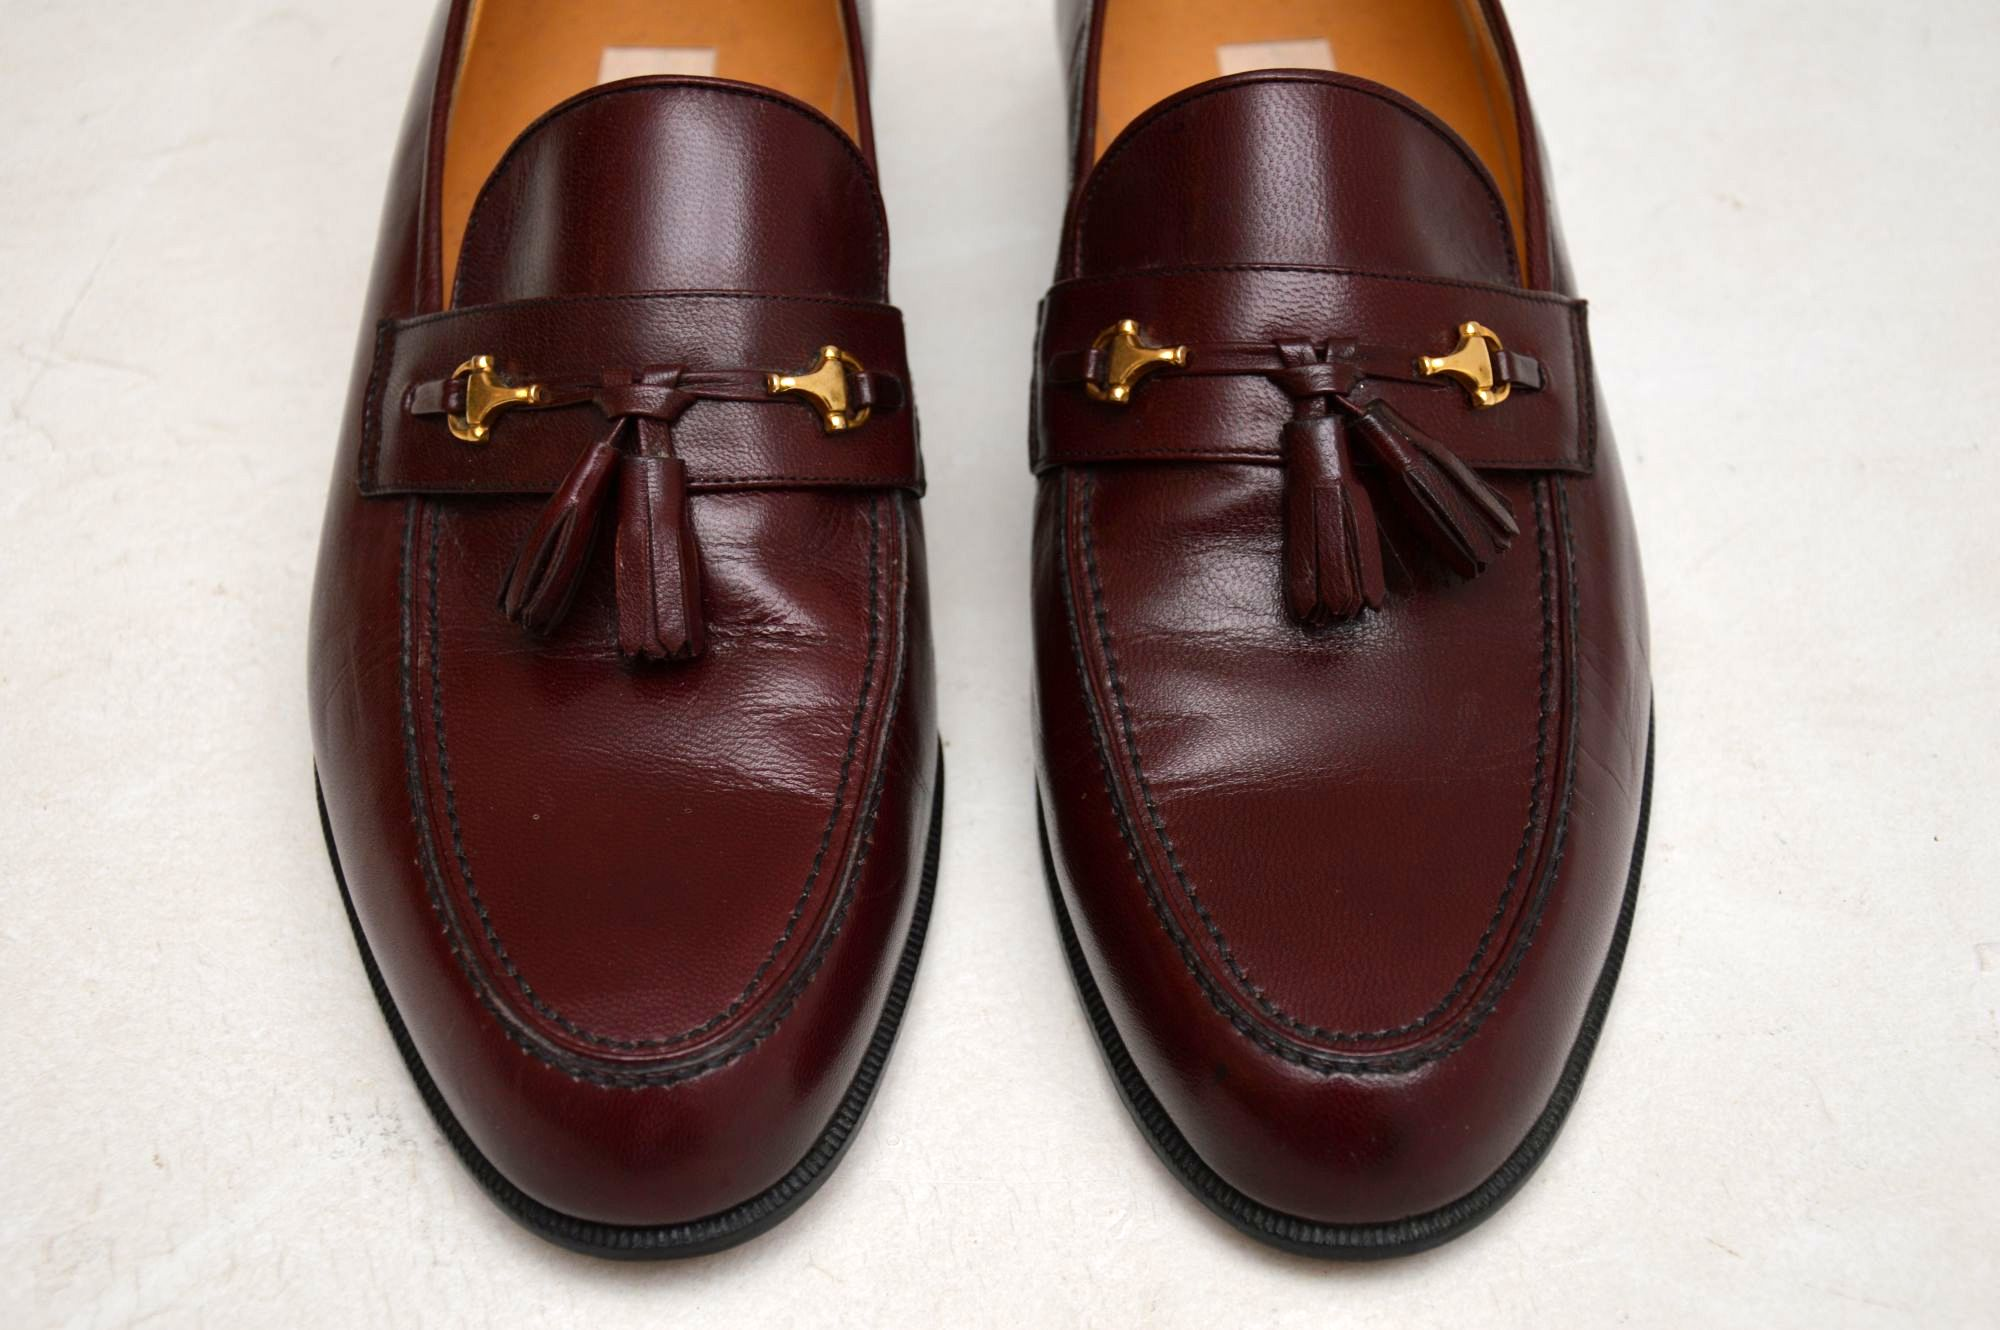 5f6e2c3f4 Vintage Mens Gucci Loafers UK Size 9.5 – Pristine Condition – Never Been  Worn